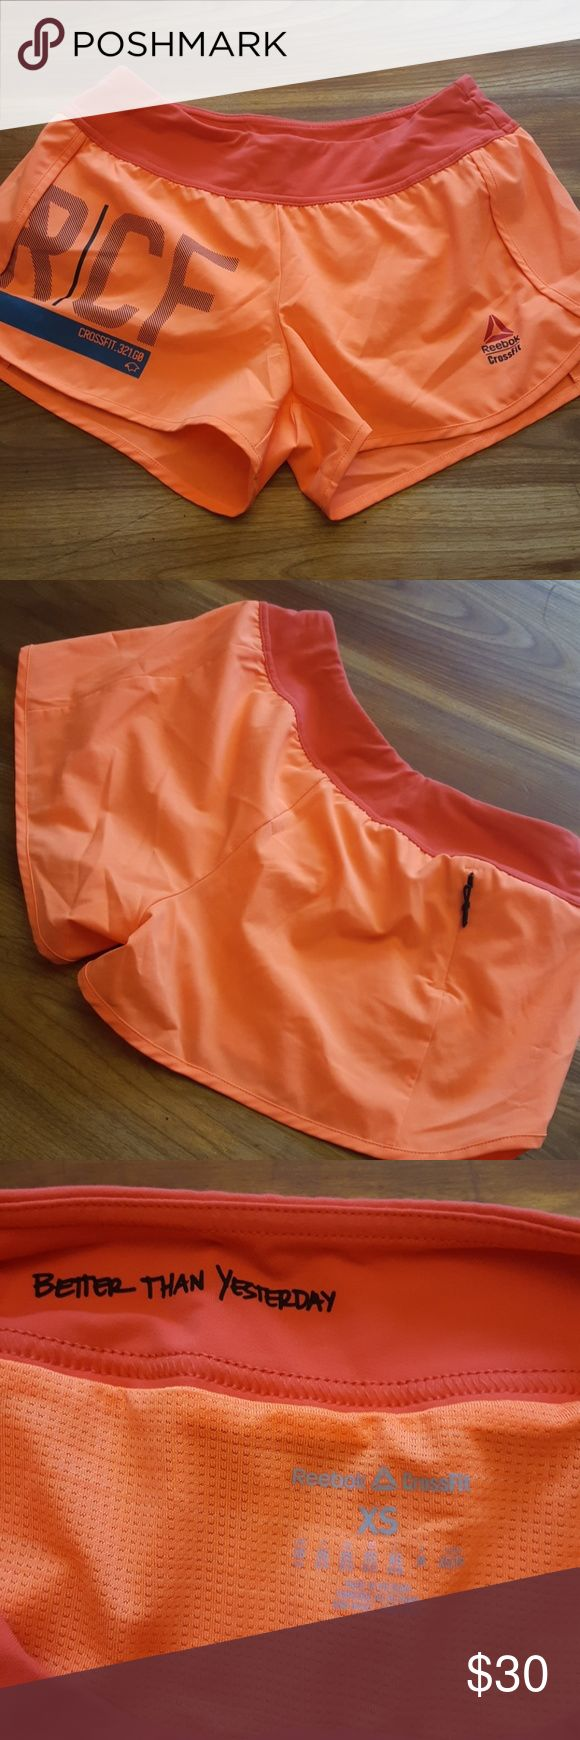 Reebok Crossfit Shorts NWOT Reebok crossfit shorts. Sized XS and orange in color.  Lined shorts with small zippered pocket in back Reebok Shorts